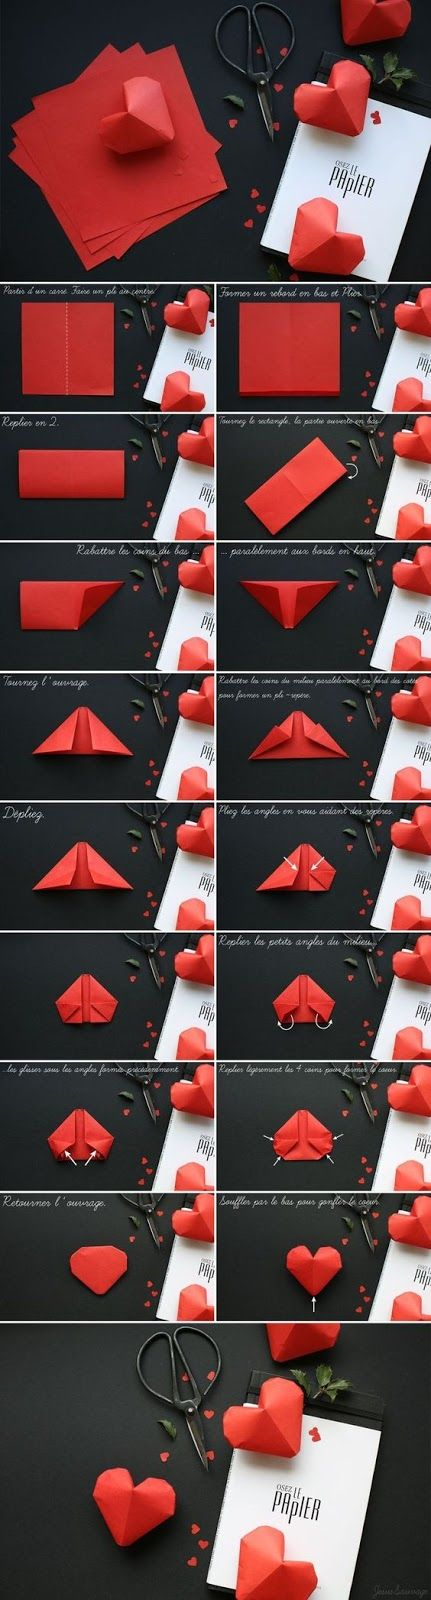 Photo of Tutoriales y DIYs: Corazón para San Valentín de papel – Origami